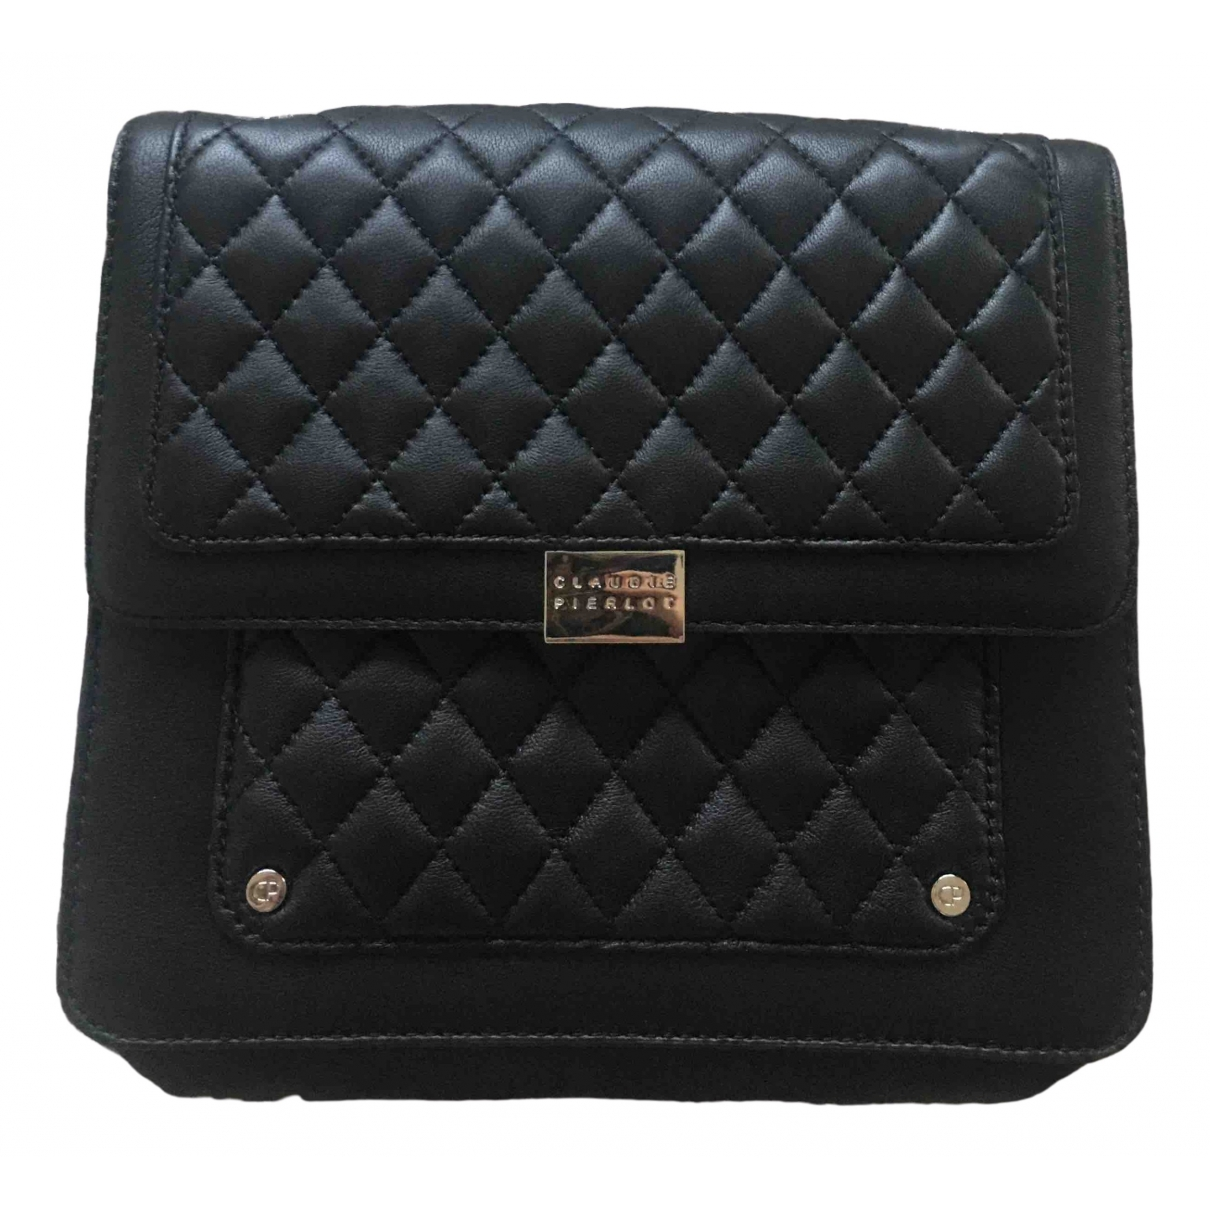 Claudie Pierlot \N Black Leather handbag for Women \N